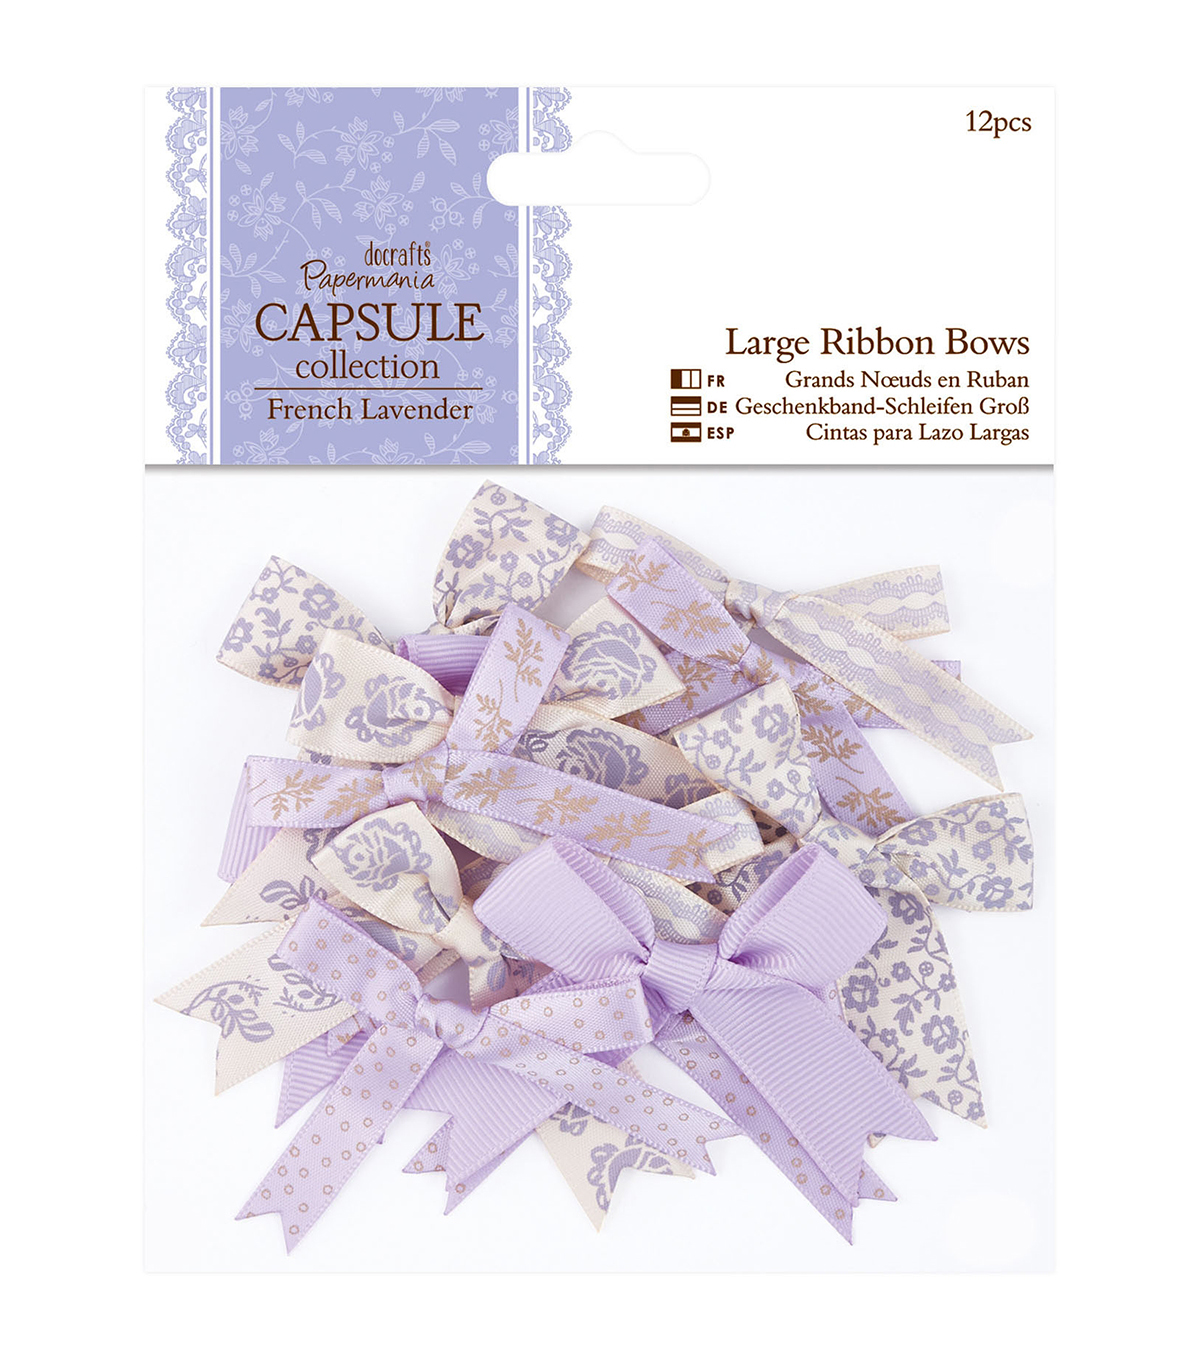 Papermania Capsule French Lavender Large Ribbon Bows